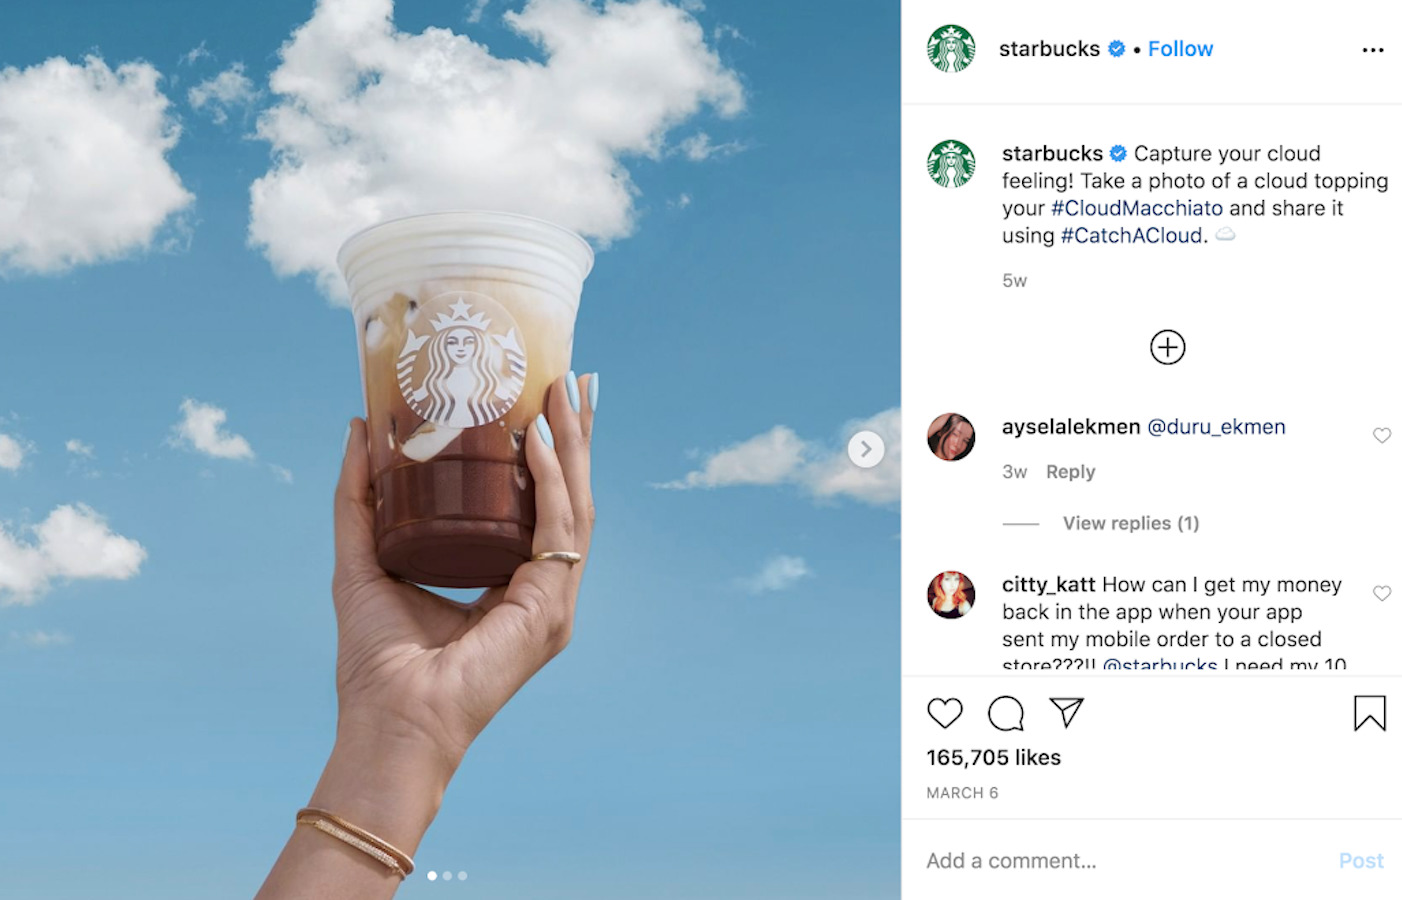 Visually compelling content on Instagram